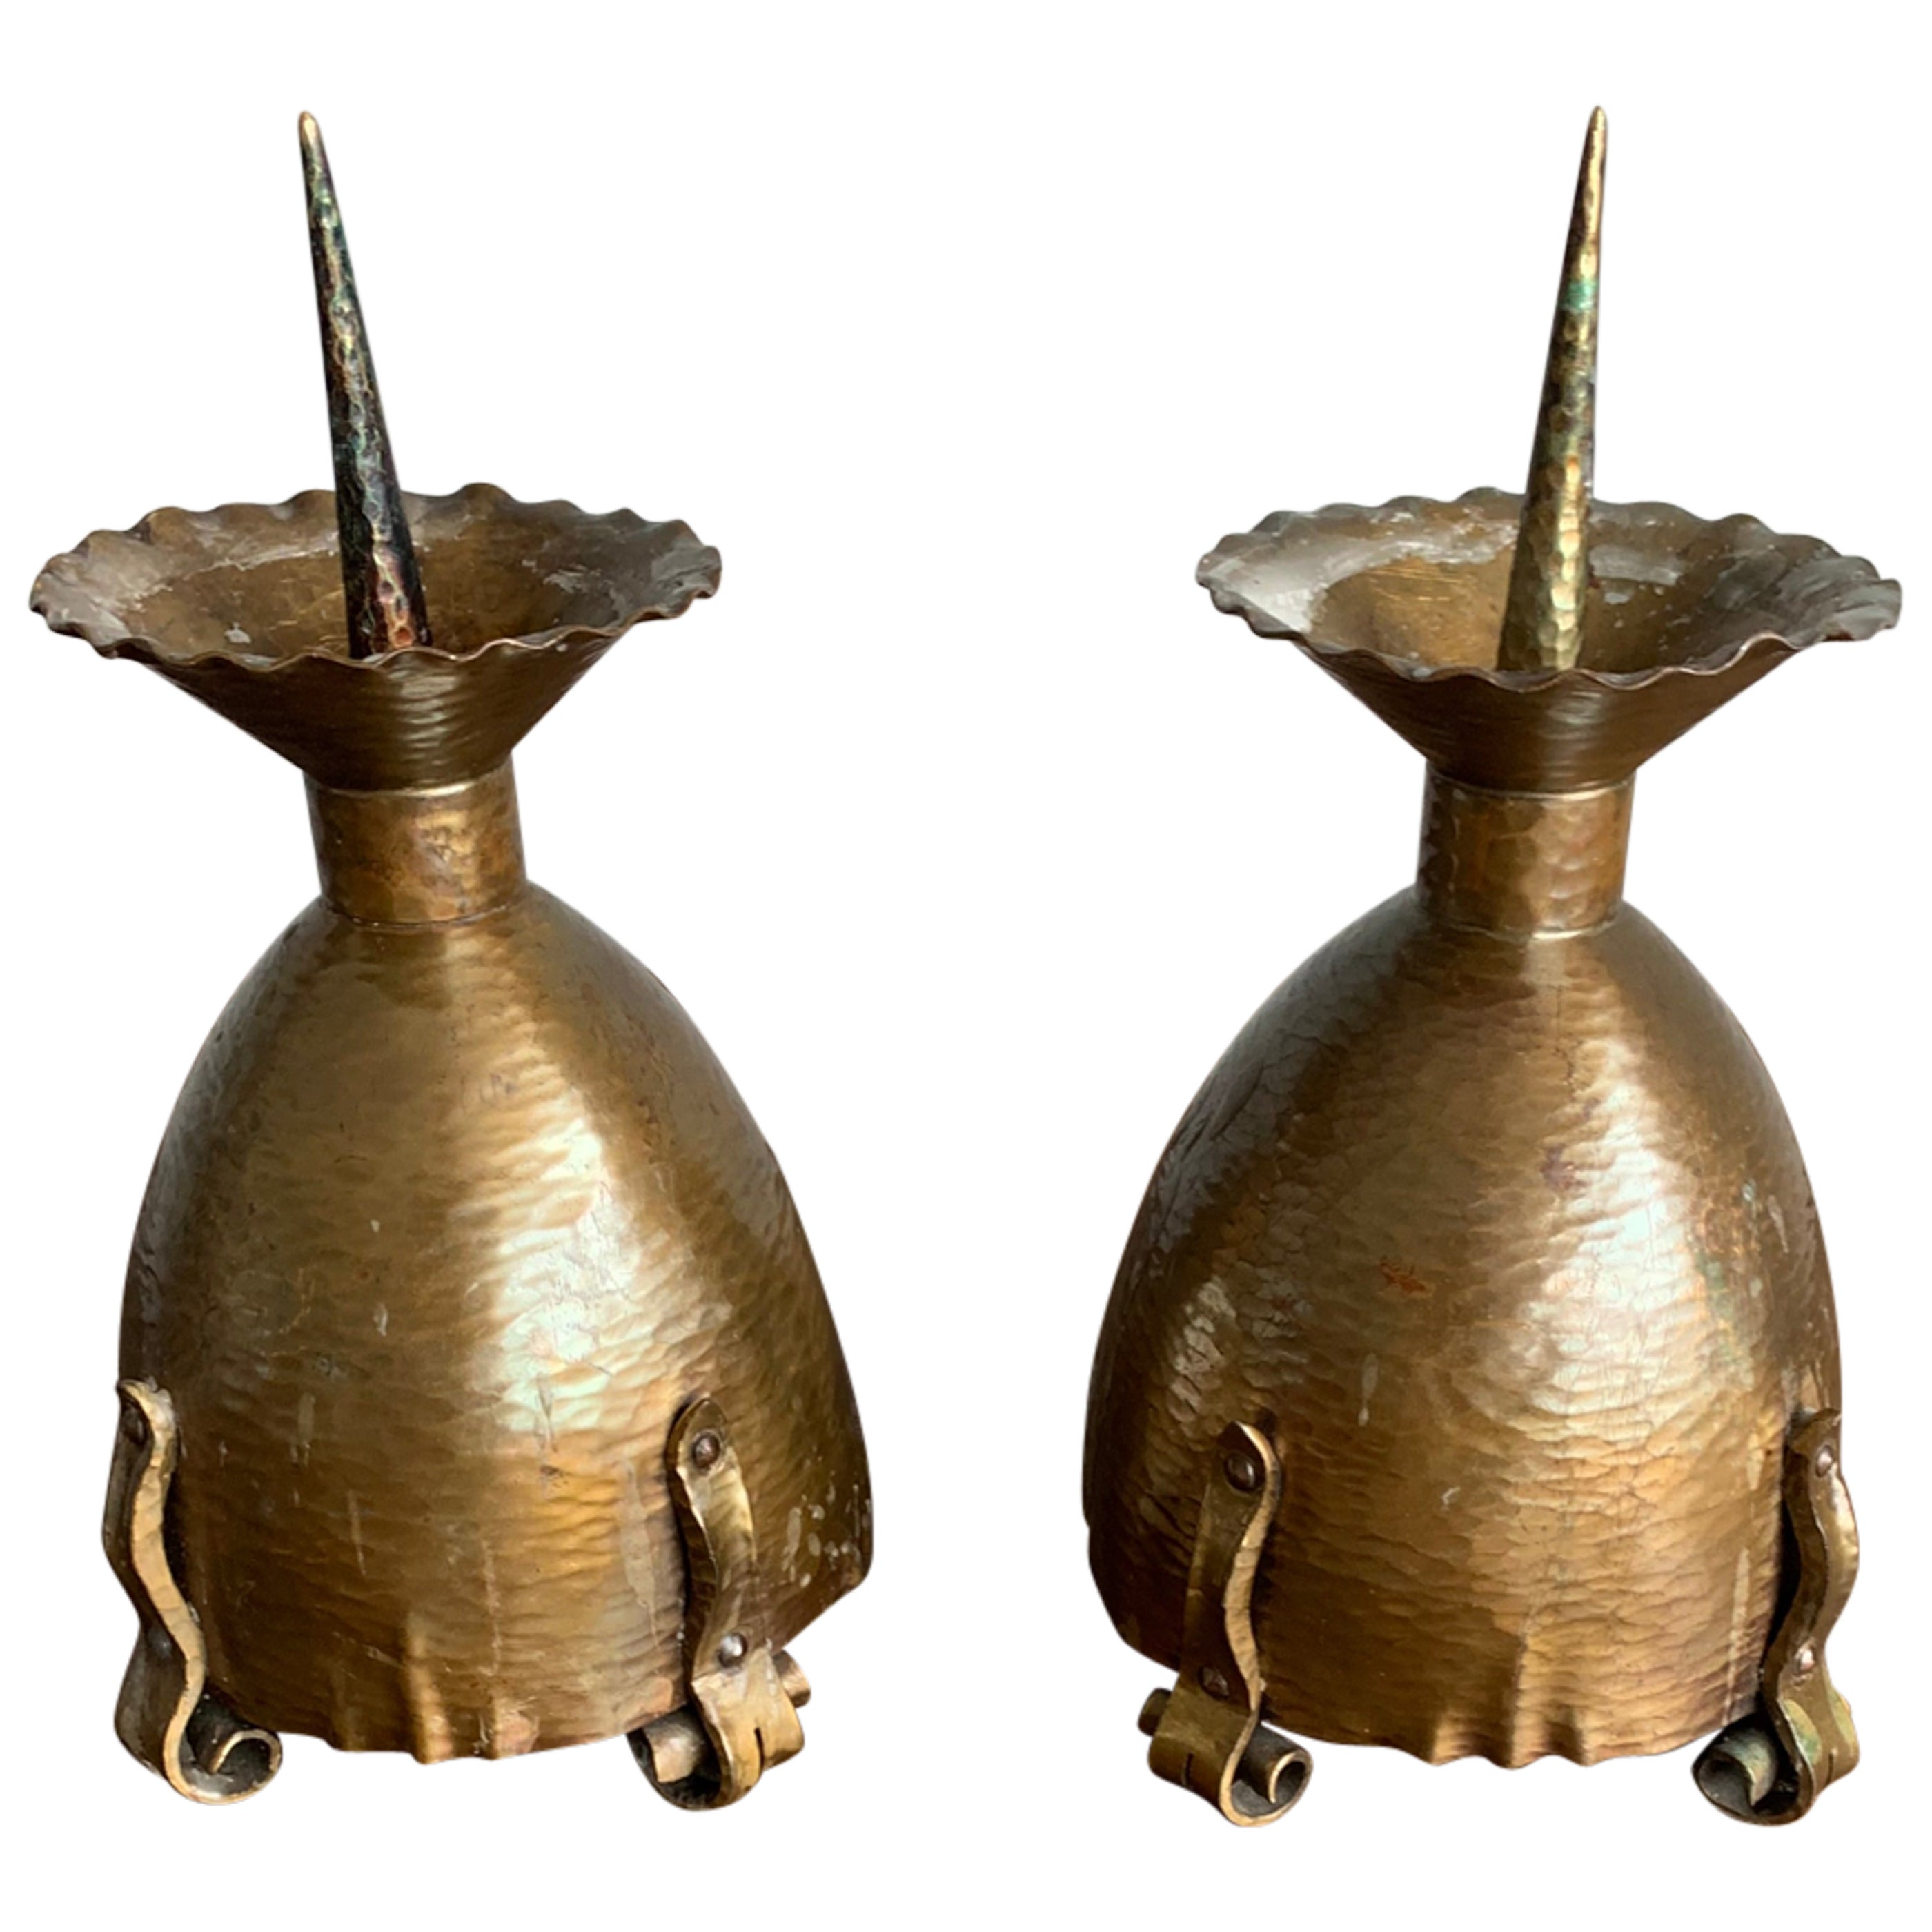 Superbly Handcrafted Pair of Arts and Crafts Brass Candlesticks / Holders, 1910s